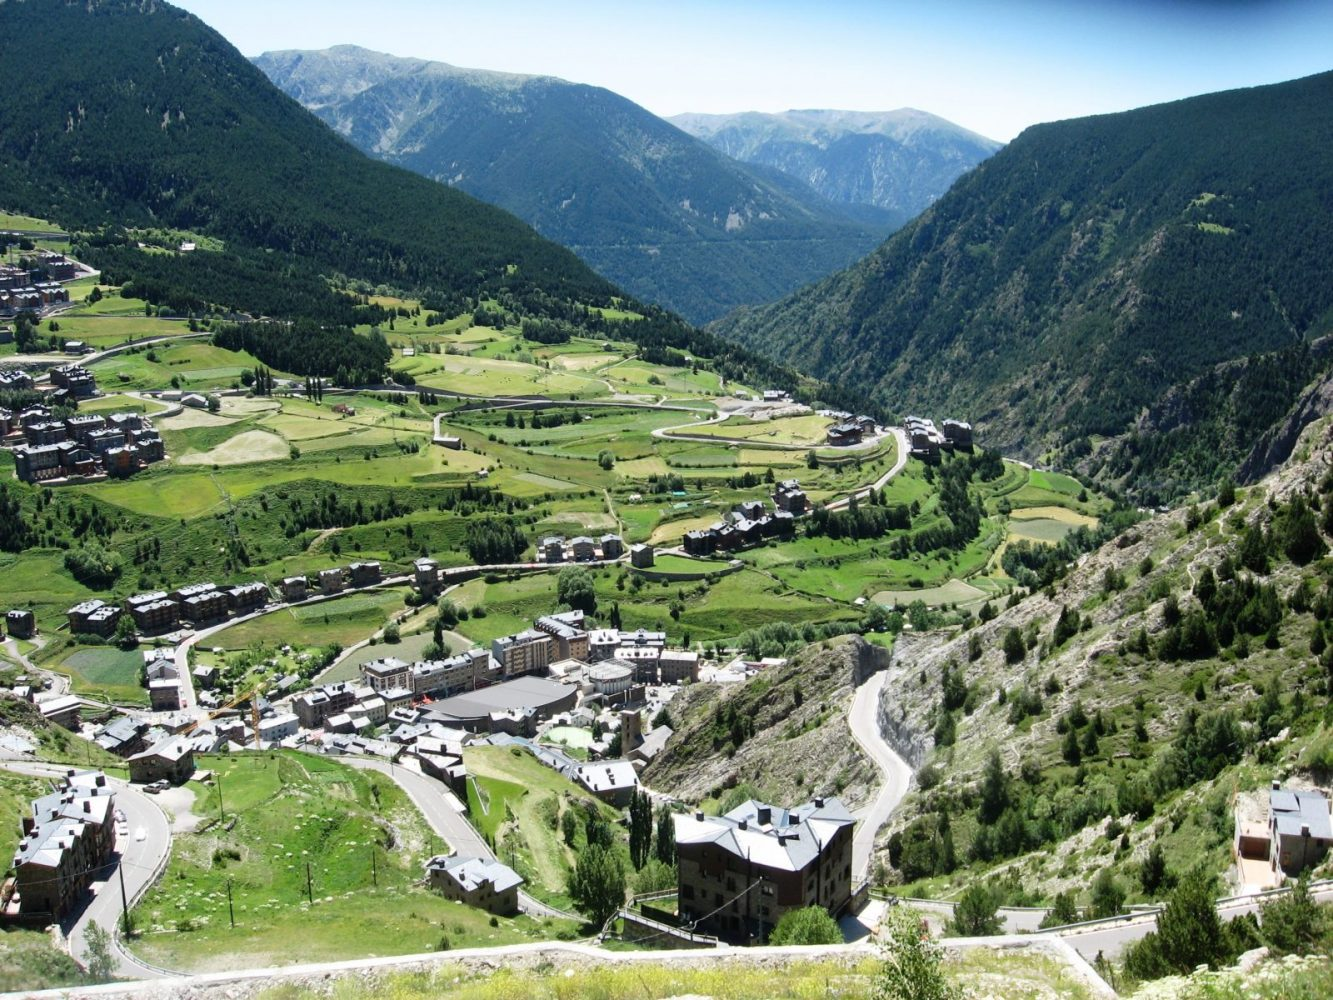 Andorra, Llivia and the captivating Pyrenees. Catalonia calls.